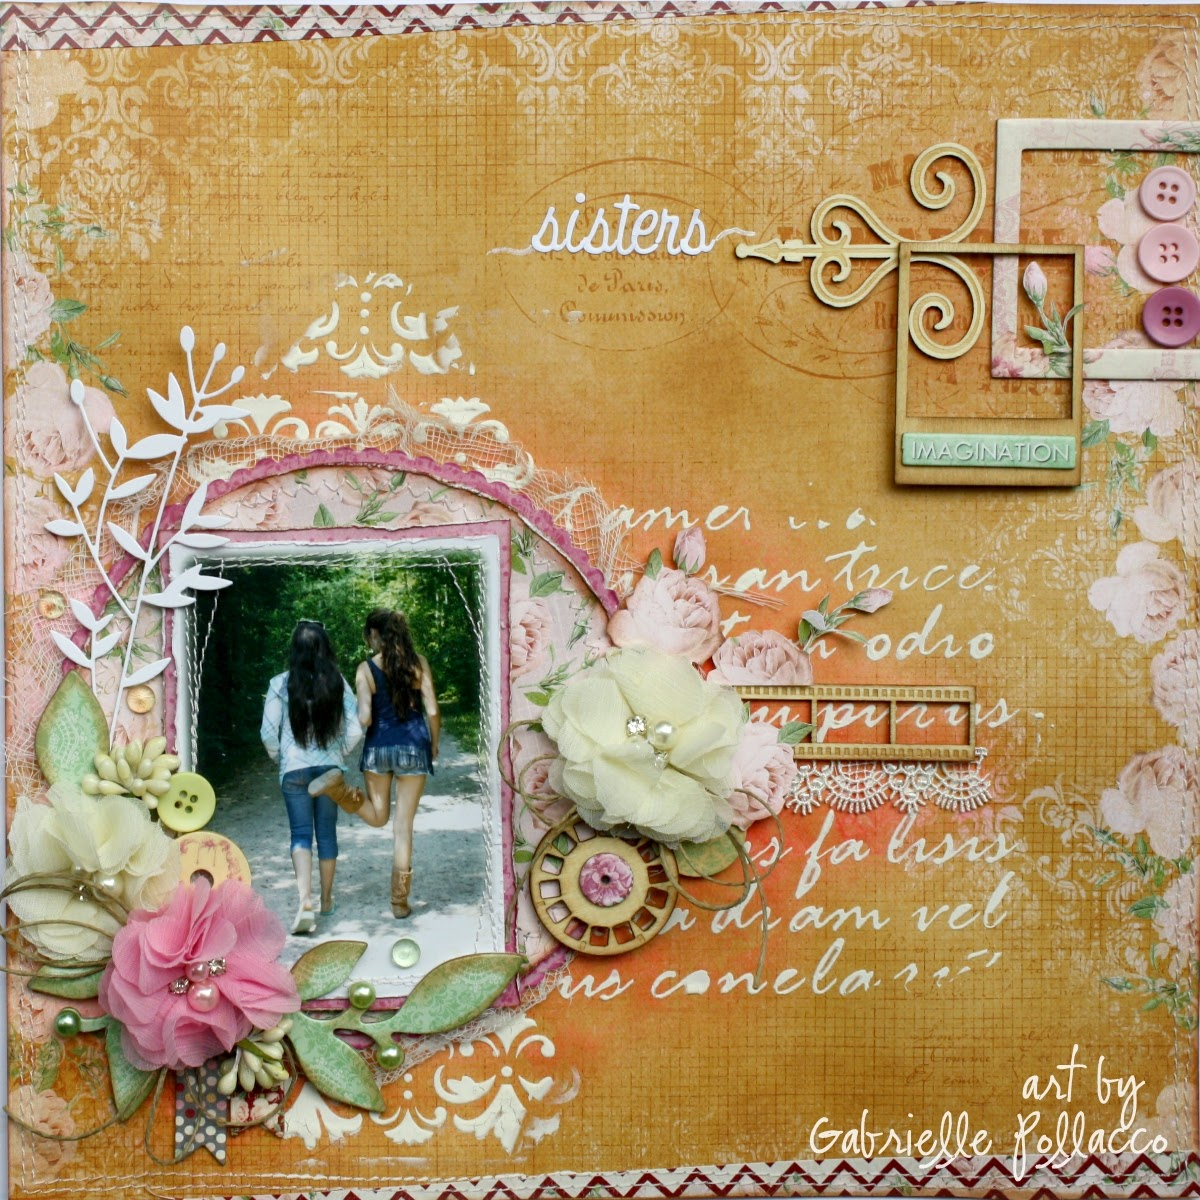 Sisters_Layout_Gabrielle_Pollacco_Bo_Bunny_Madeleine_01